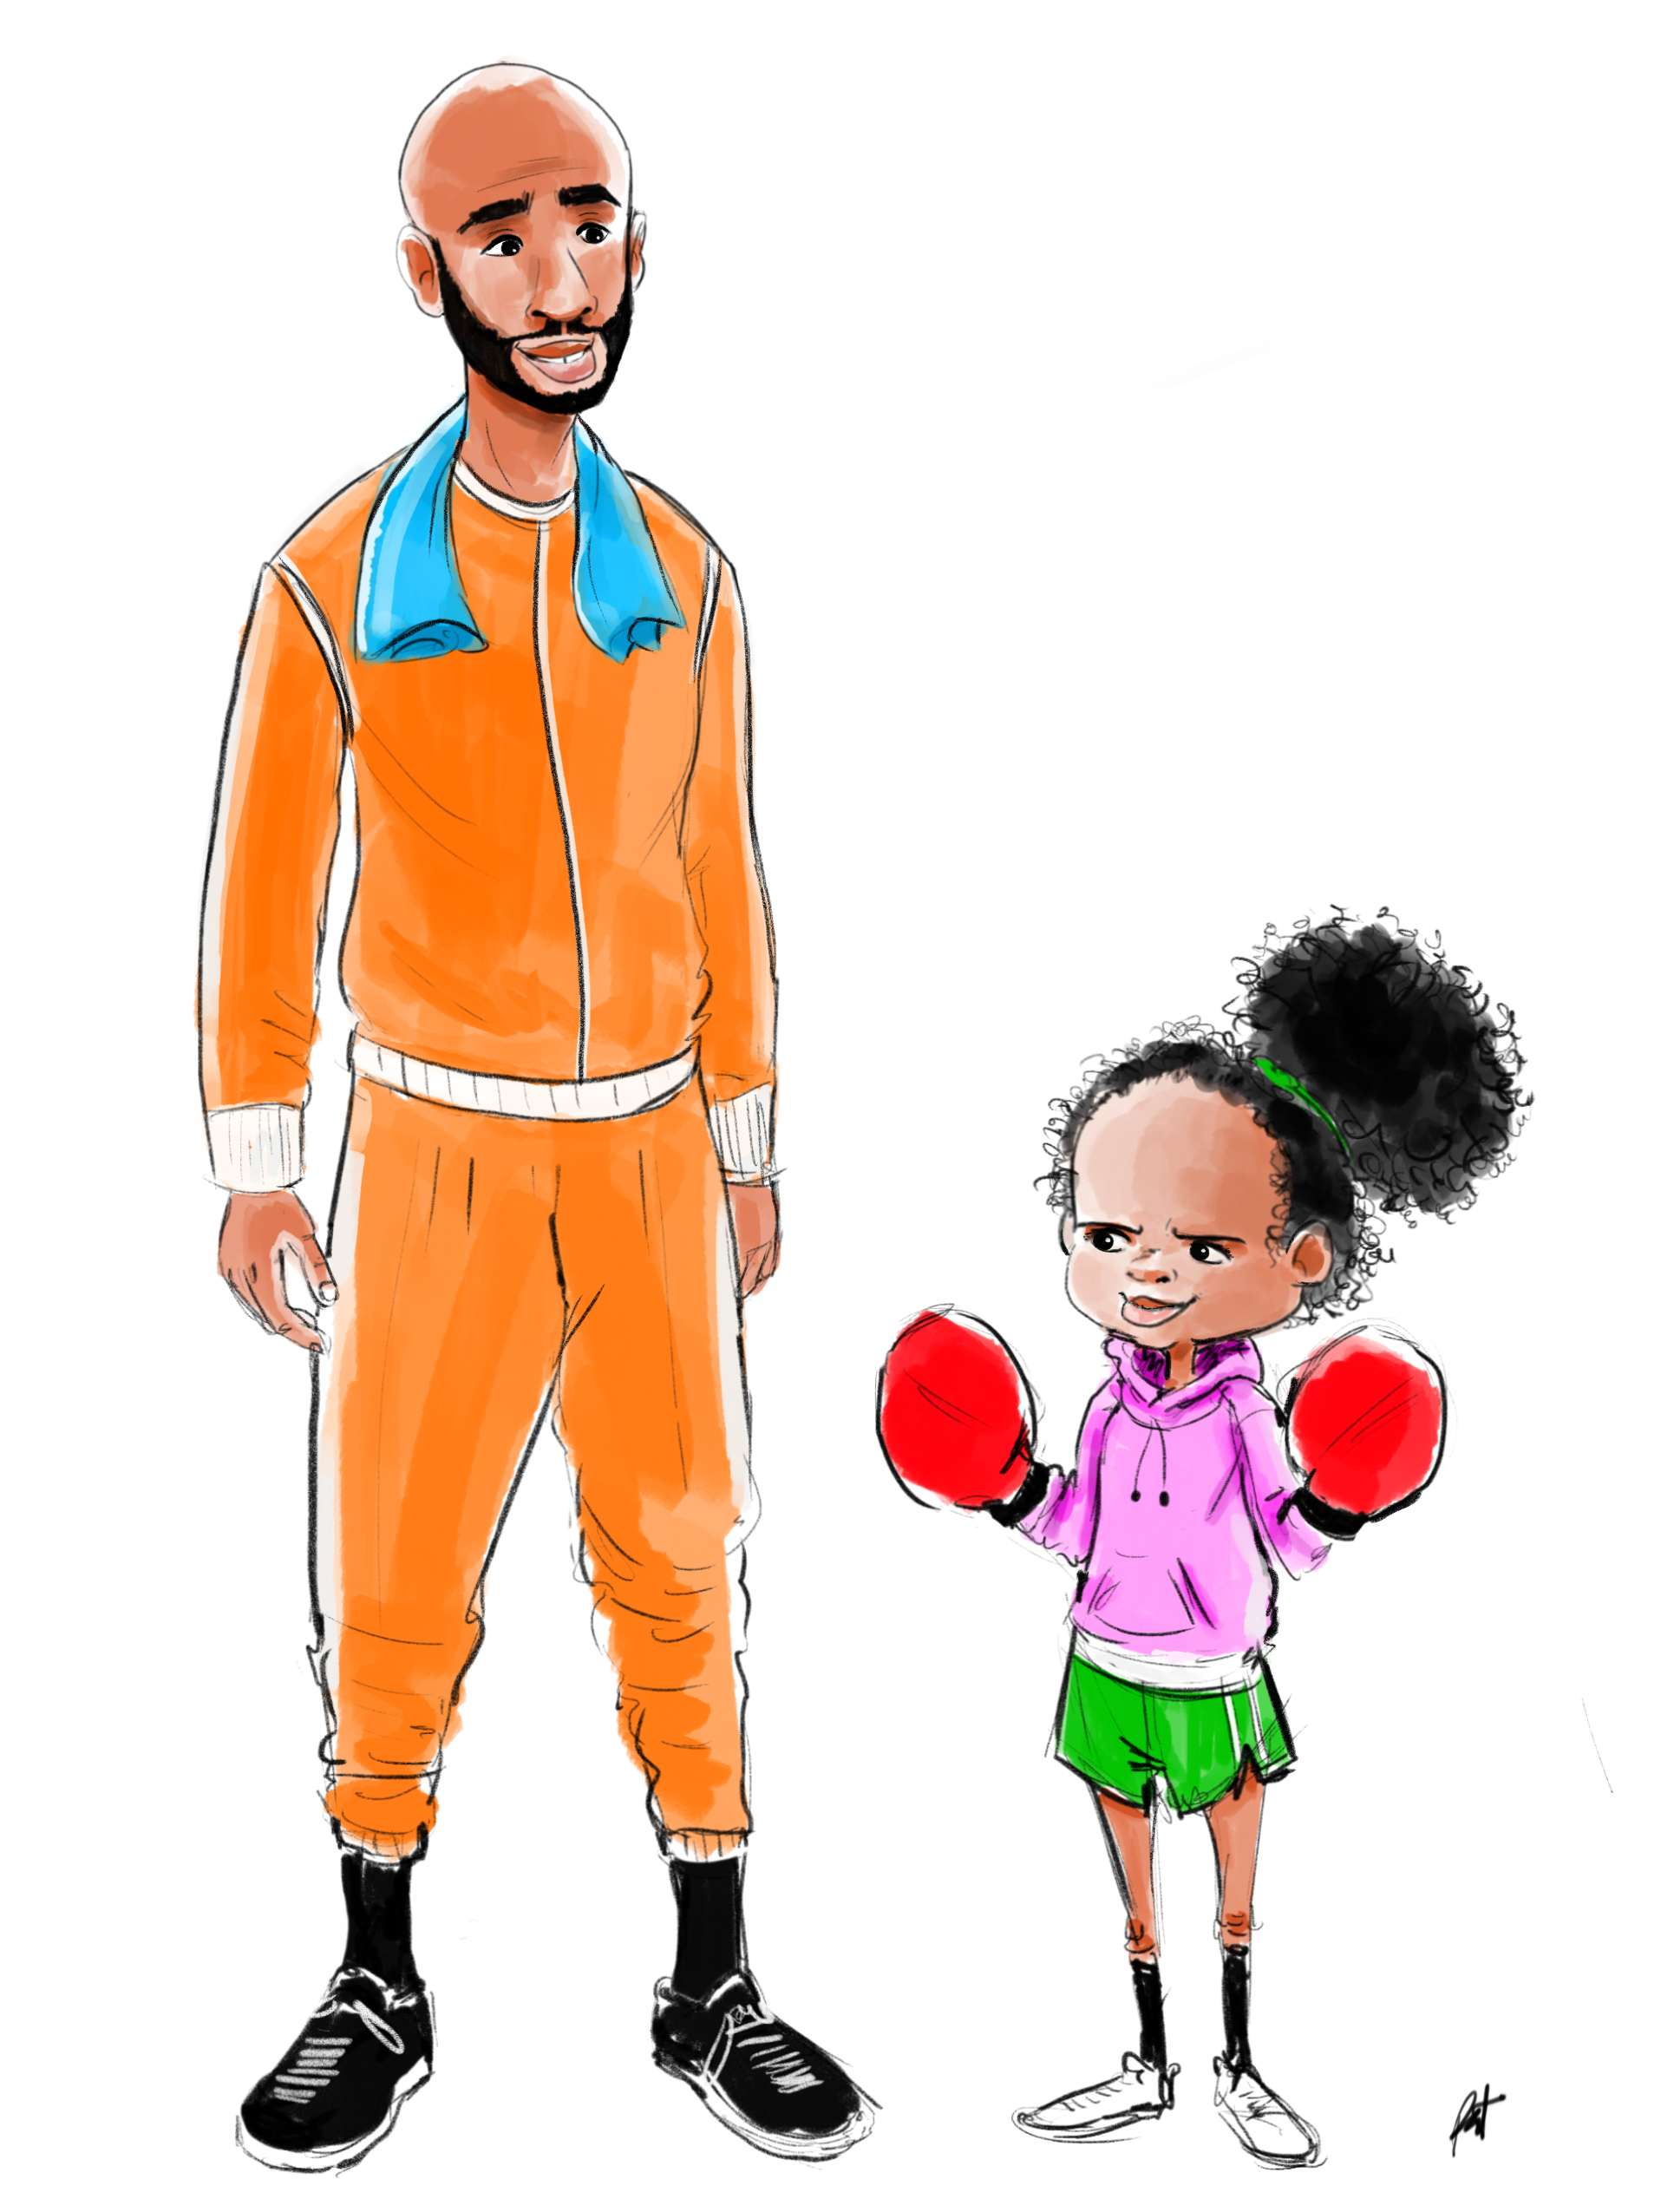 The Champ and Me - Early Design